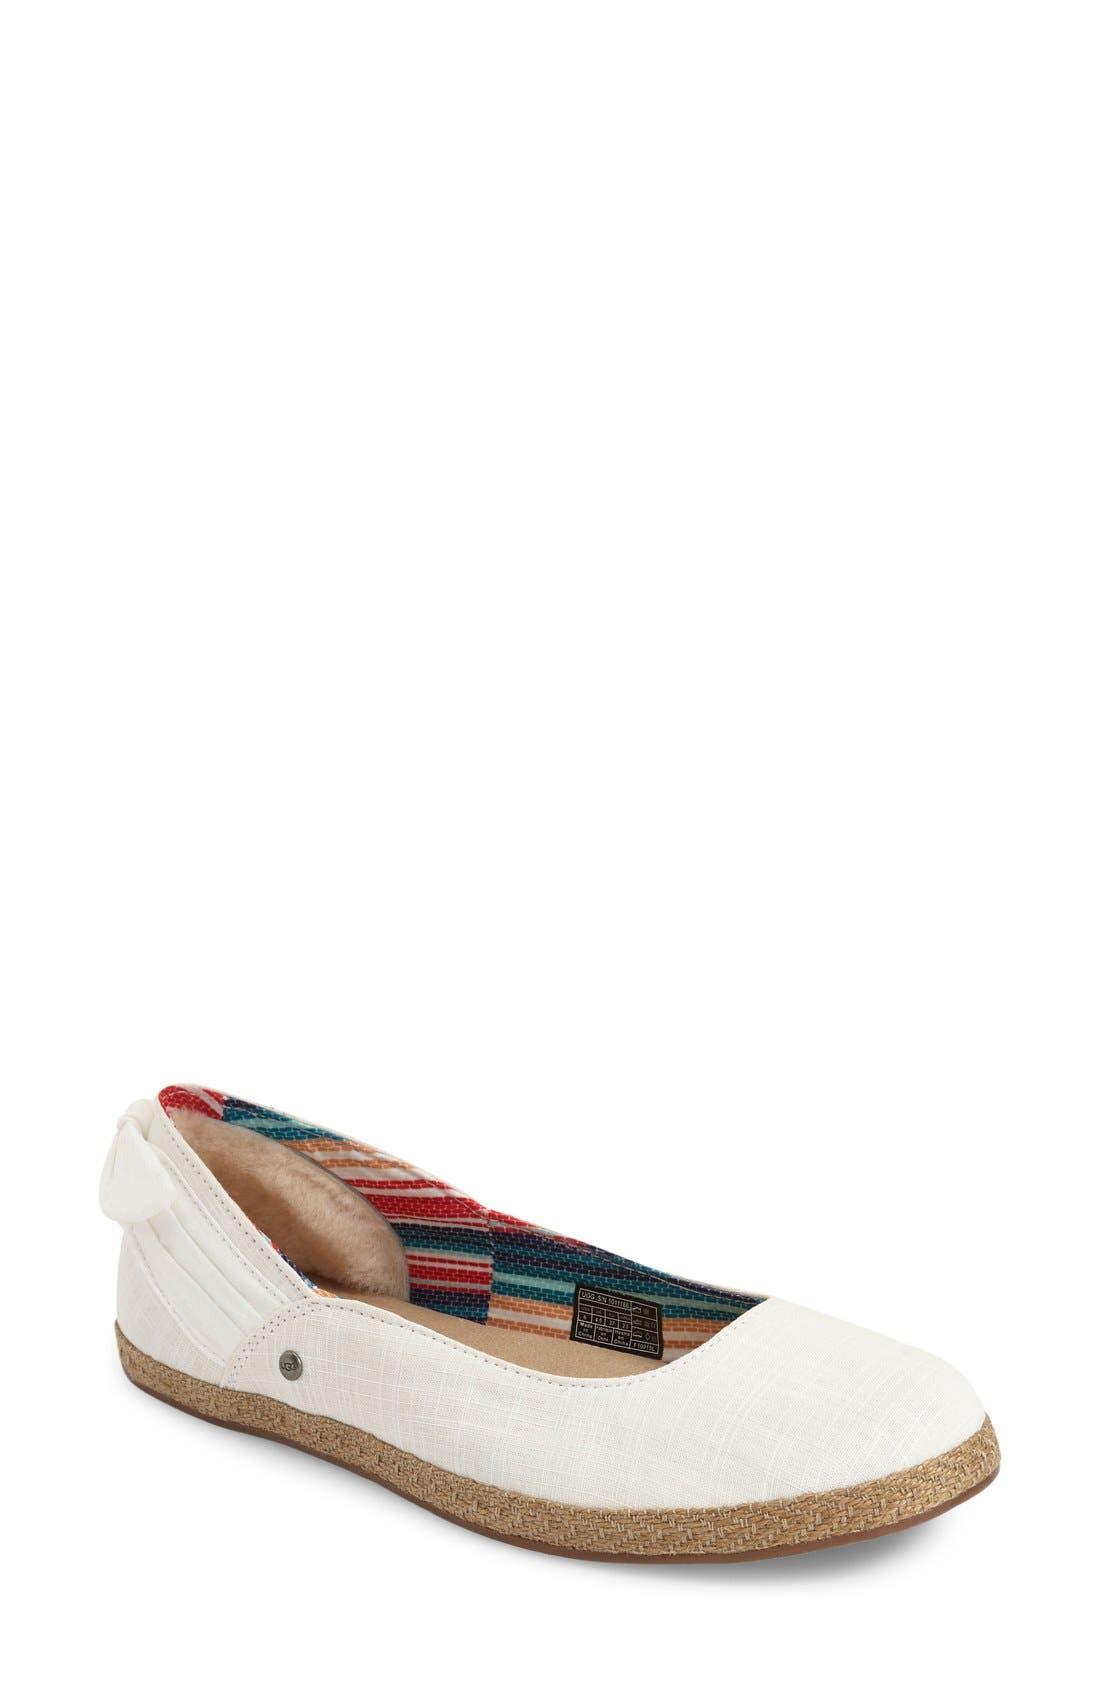 UGG | Perrie Shearling Lined Flat